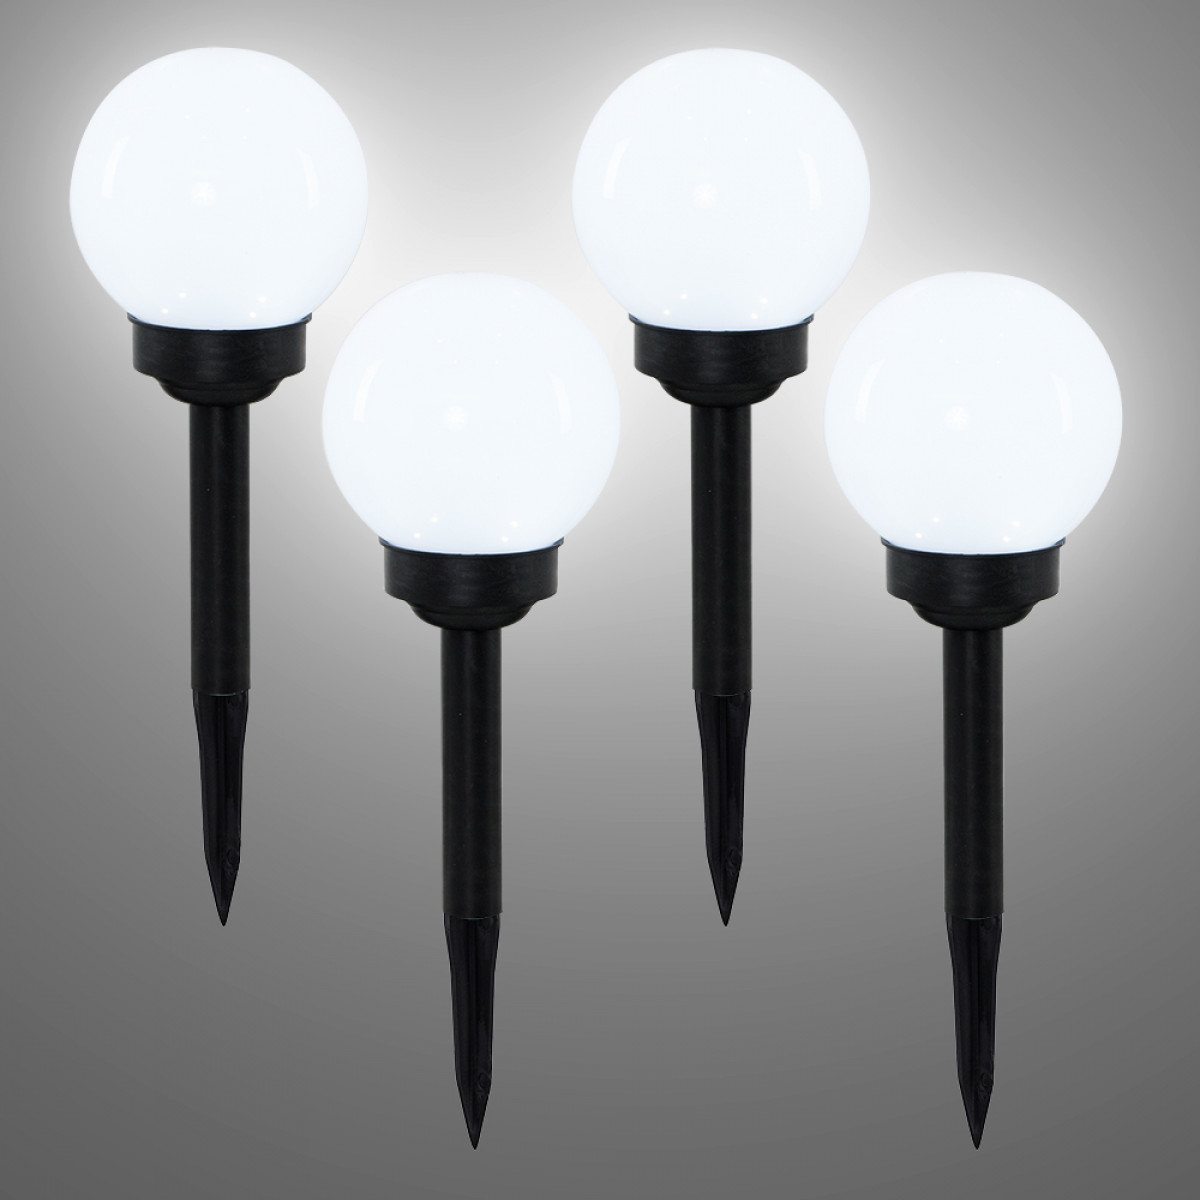 Outdoor Lighting Clearance: Pack Of 4 Globe Solar LED Outdoor Spike Post Garden Lights